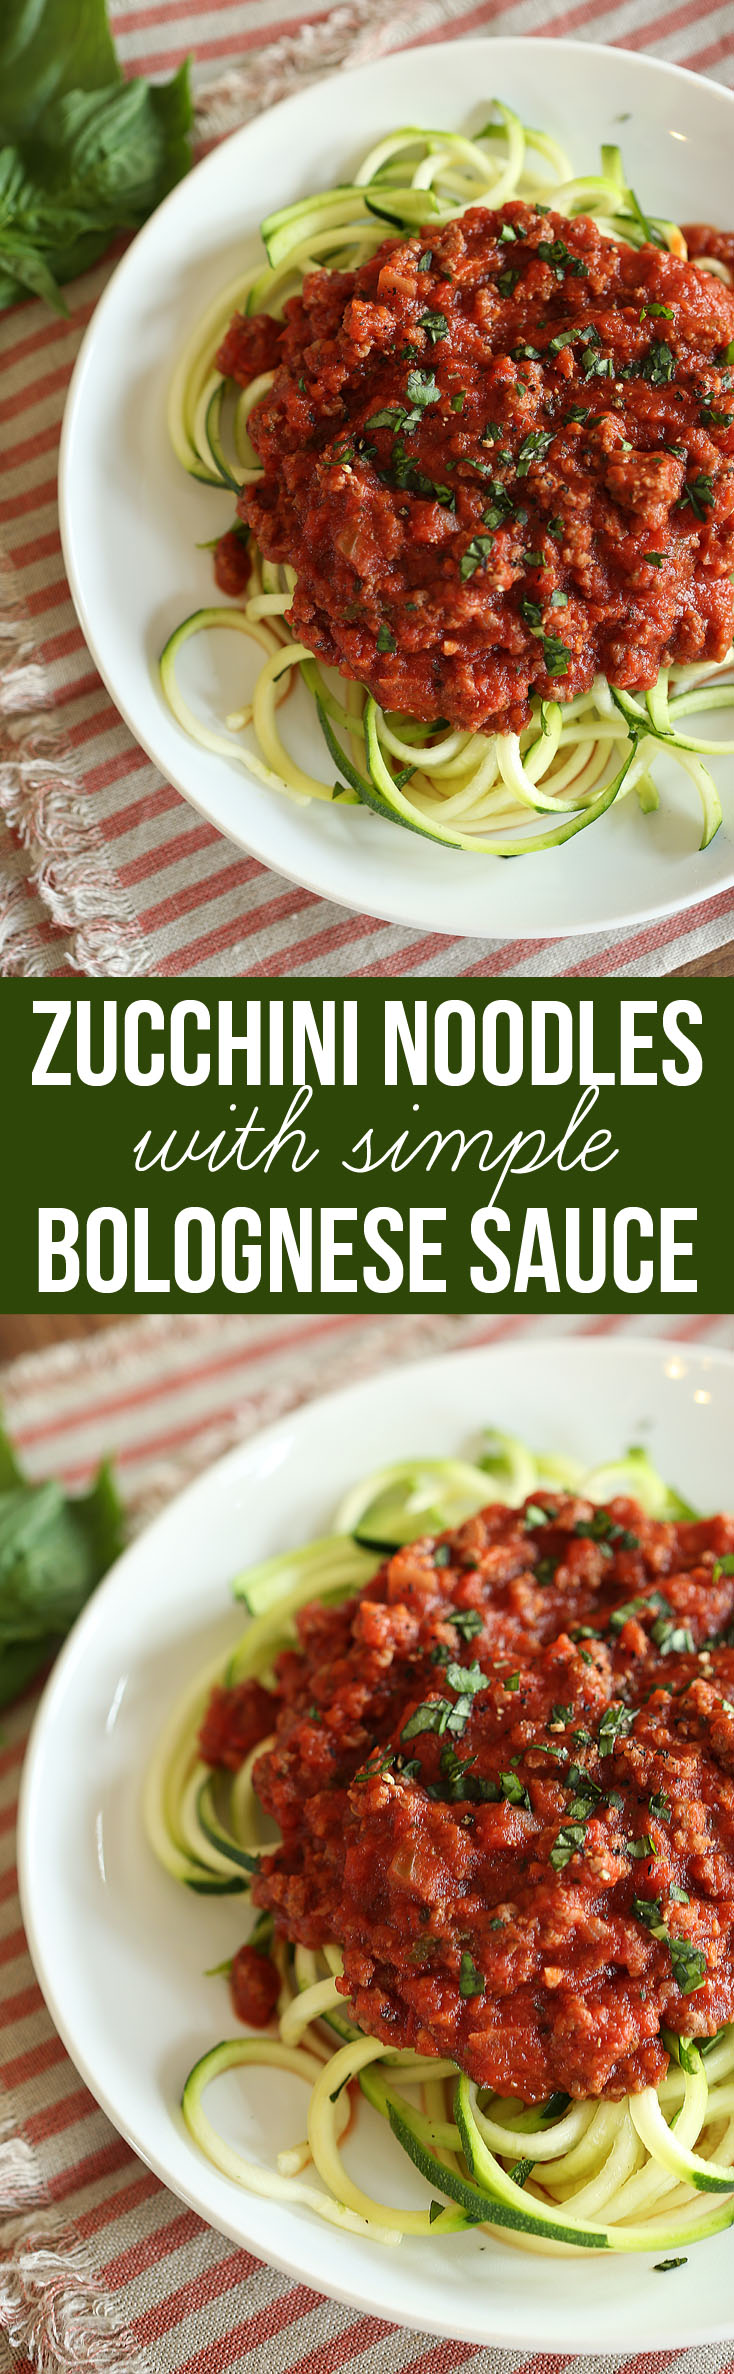 Zucchini Noodles with Simple Bolognese Sauce | Eat Yourself Skinny